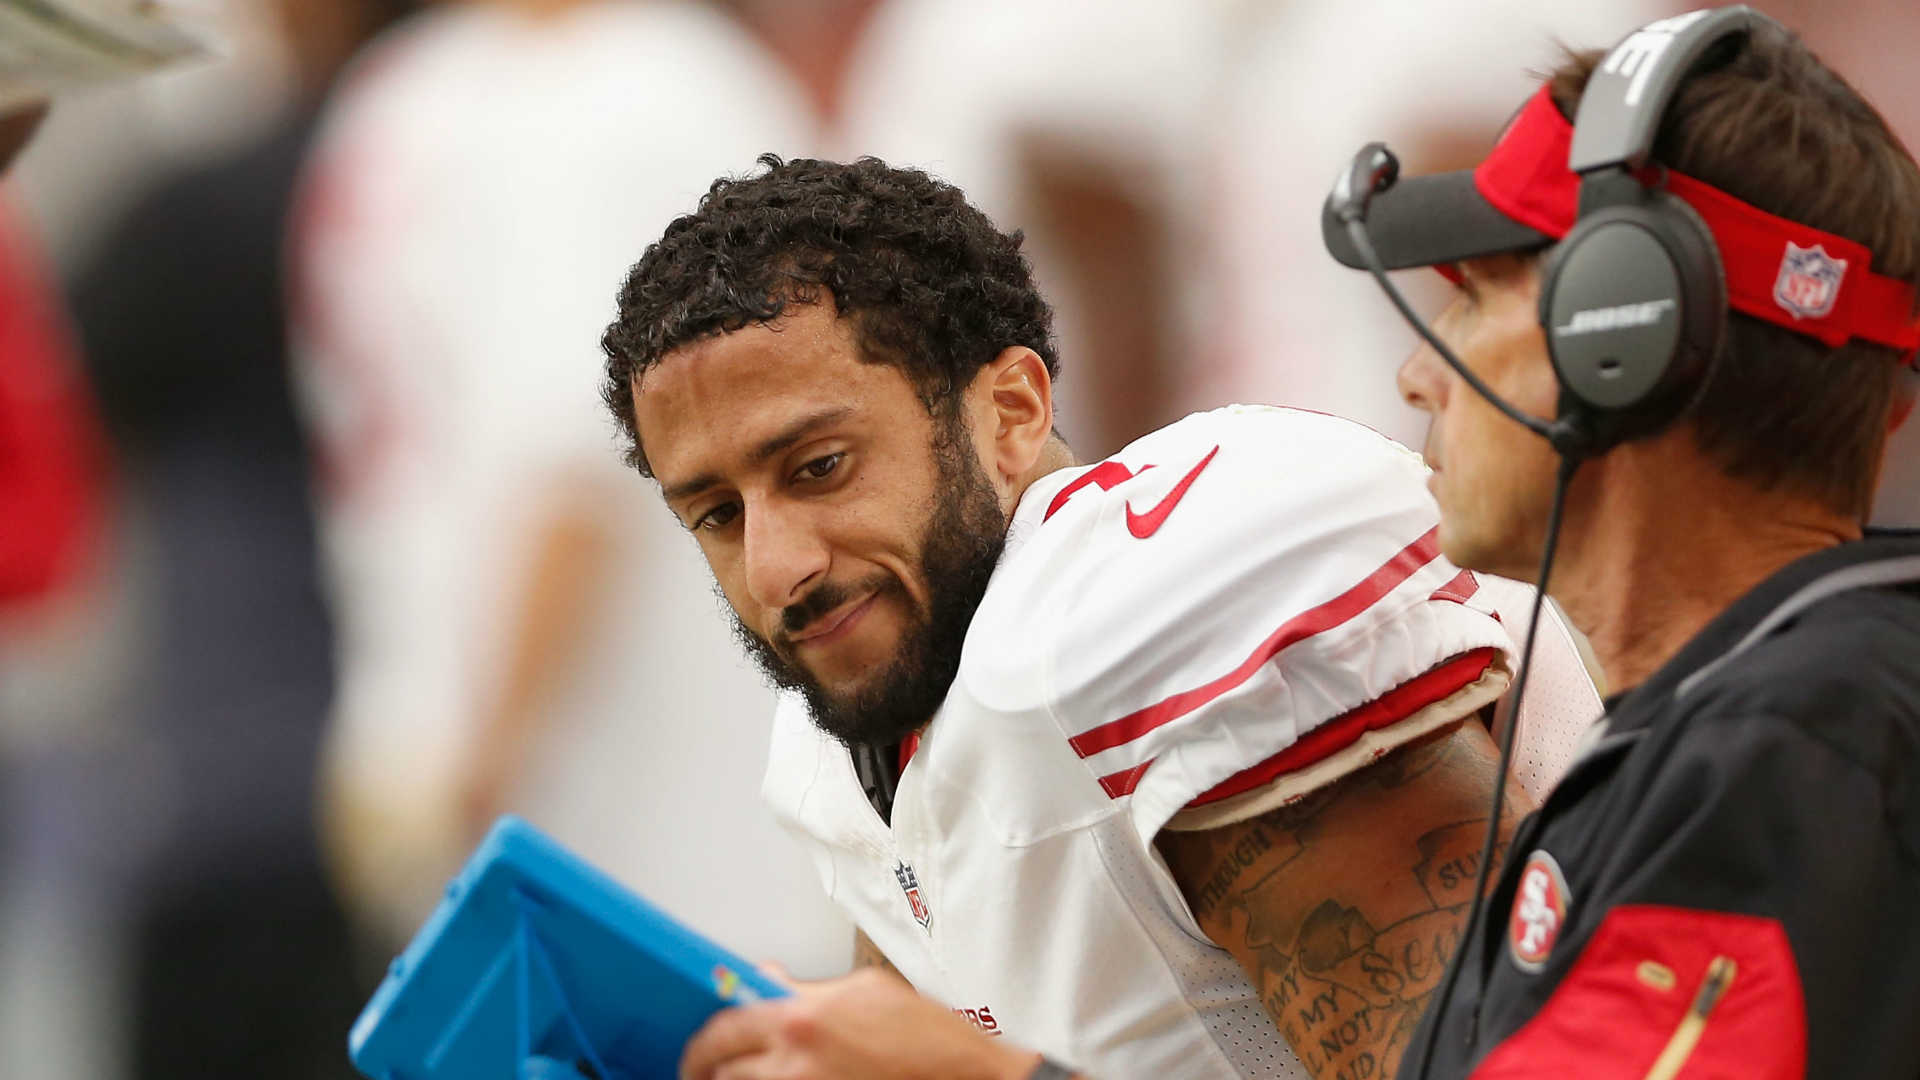 Colin Kaepernick's Pass Was So Errant He Drilled A Trainer